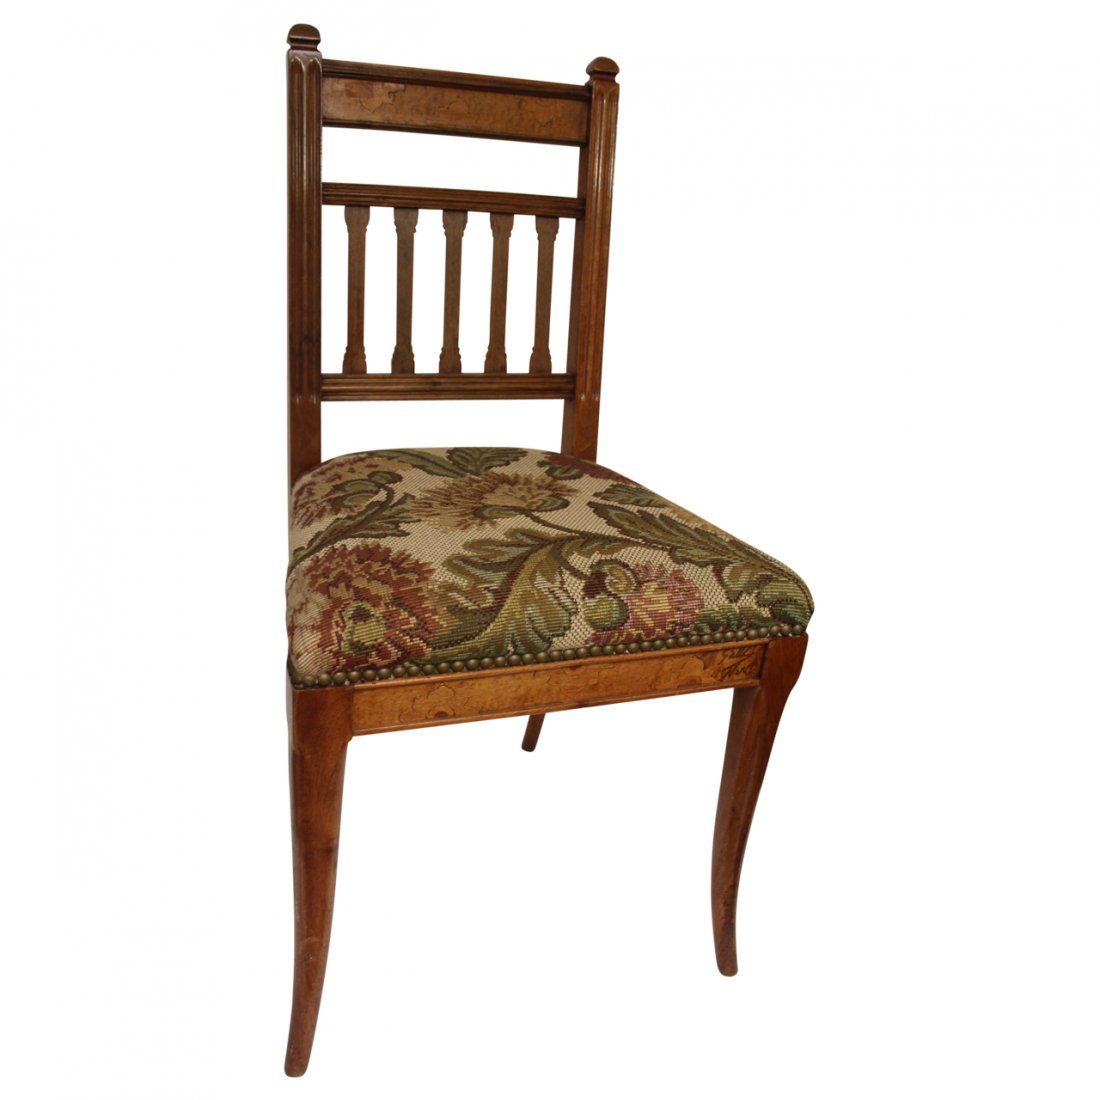 SIDE CHAIR EMILE GALLE (1846-1904)